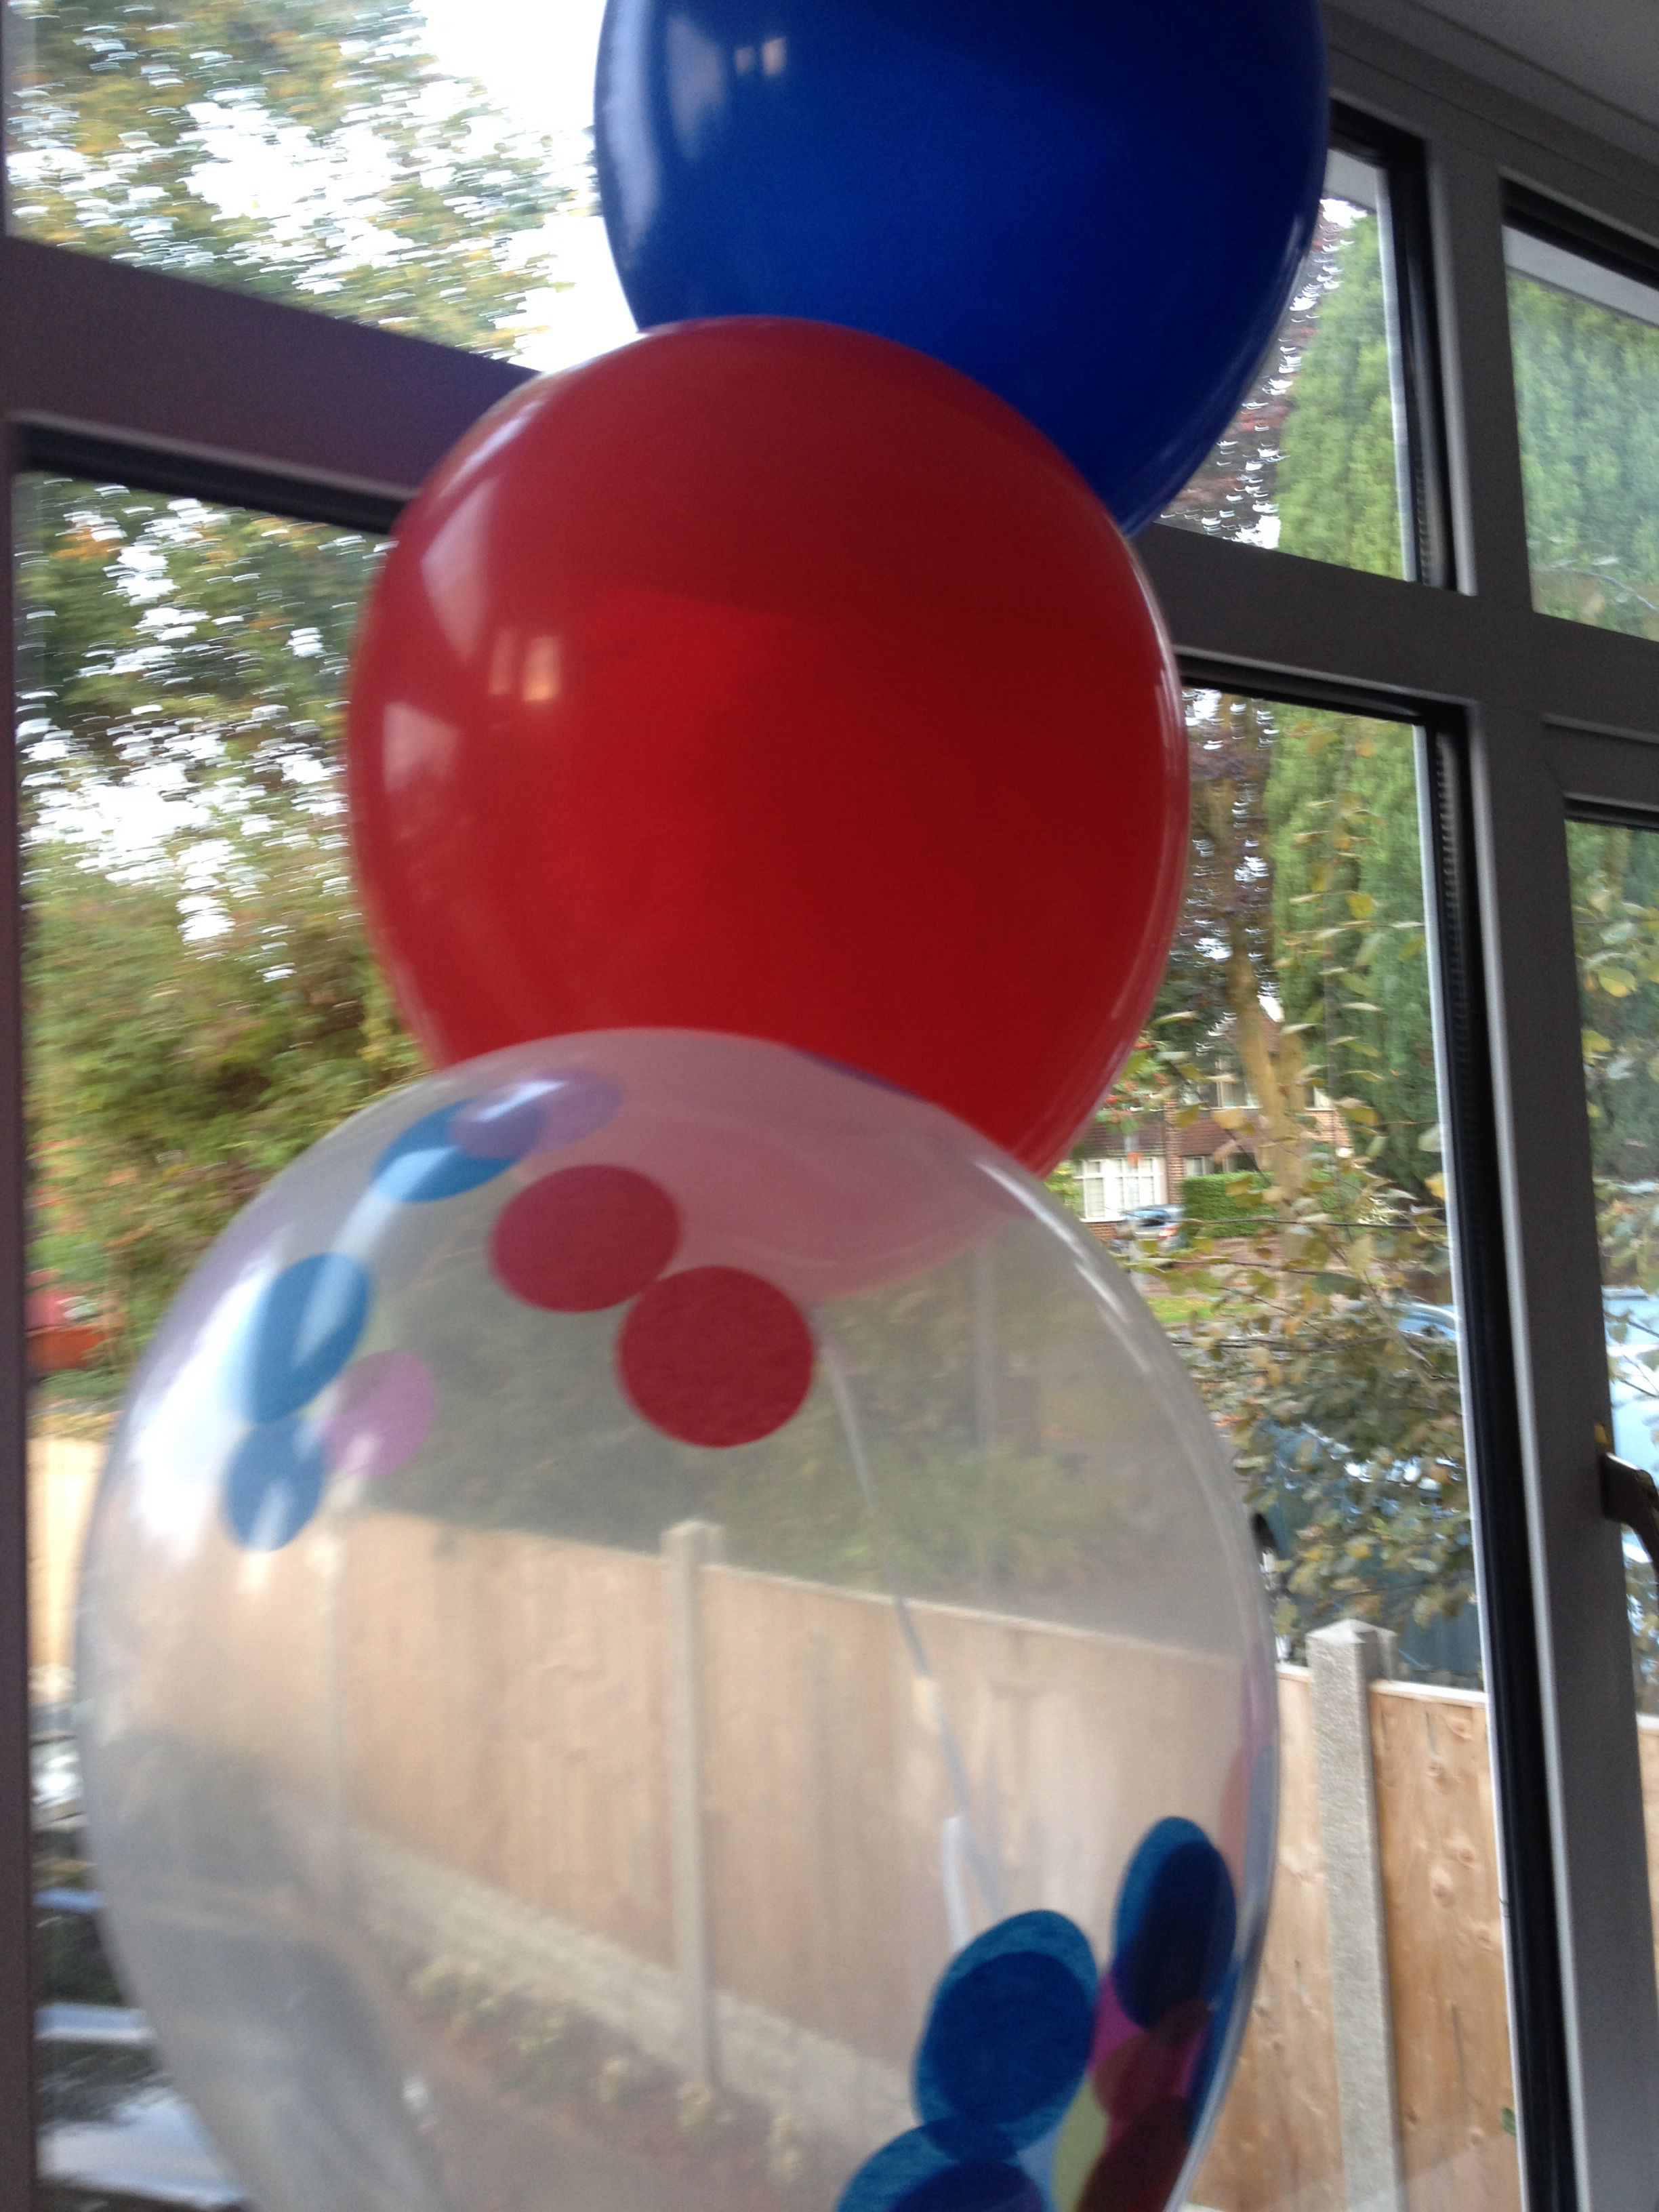 Confetti balloons and primary coloured balloons by bubblegum balloons - used for christening. Great impact